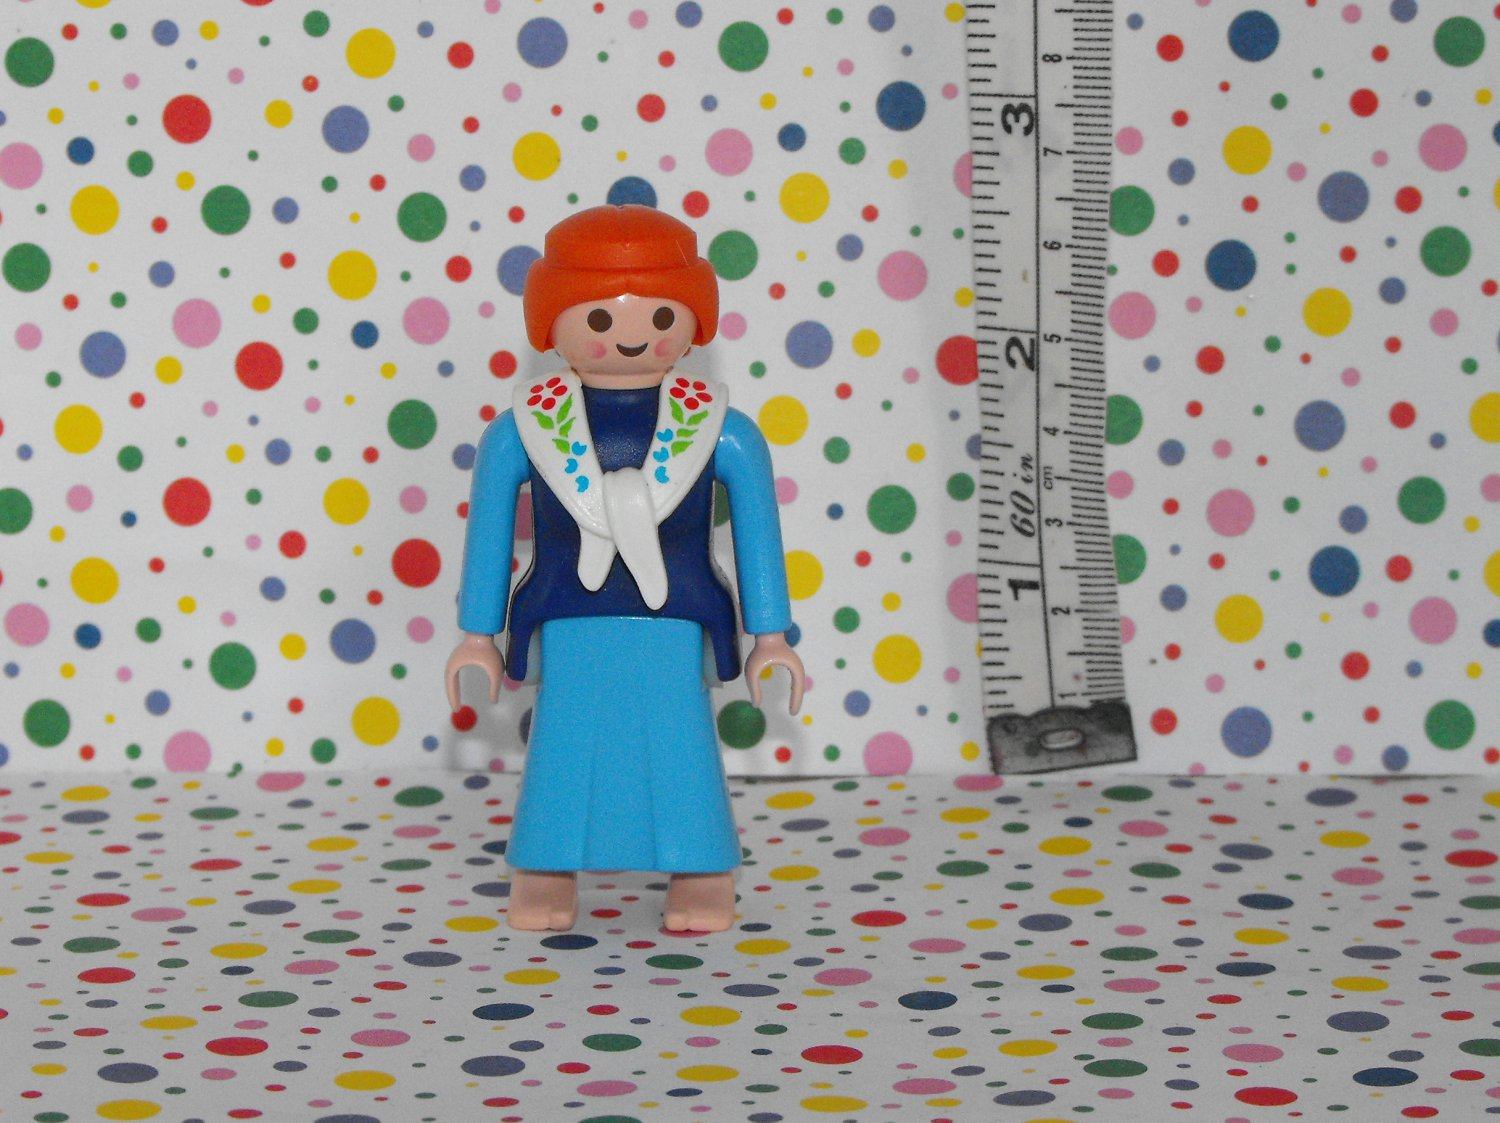 Playmobil Lego Minifigure Farm Dutch Milkmaid Woman Figure